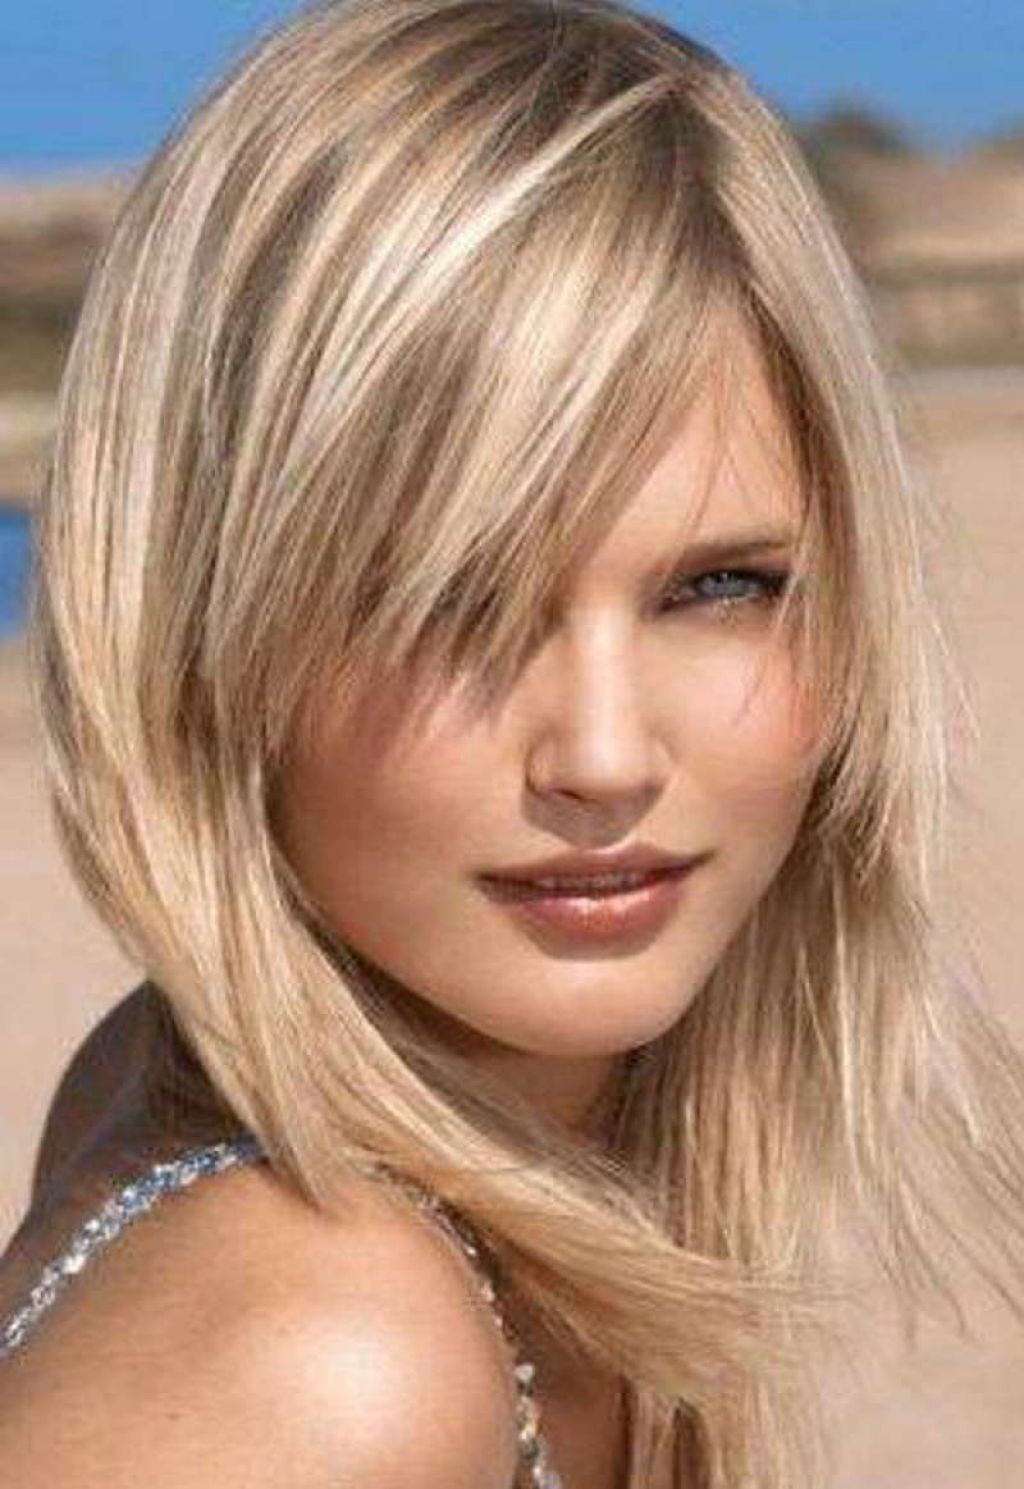 Women Hairstyle : Hairstyles For Fine Hair Female Round With Fringe Pertaining To Most Up To Date Medium Haircuts For Fine Thin Hair (View 6 of 20)